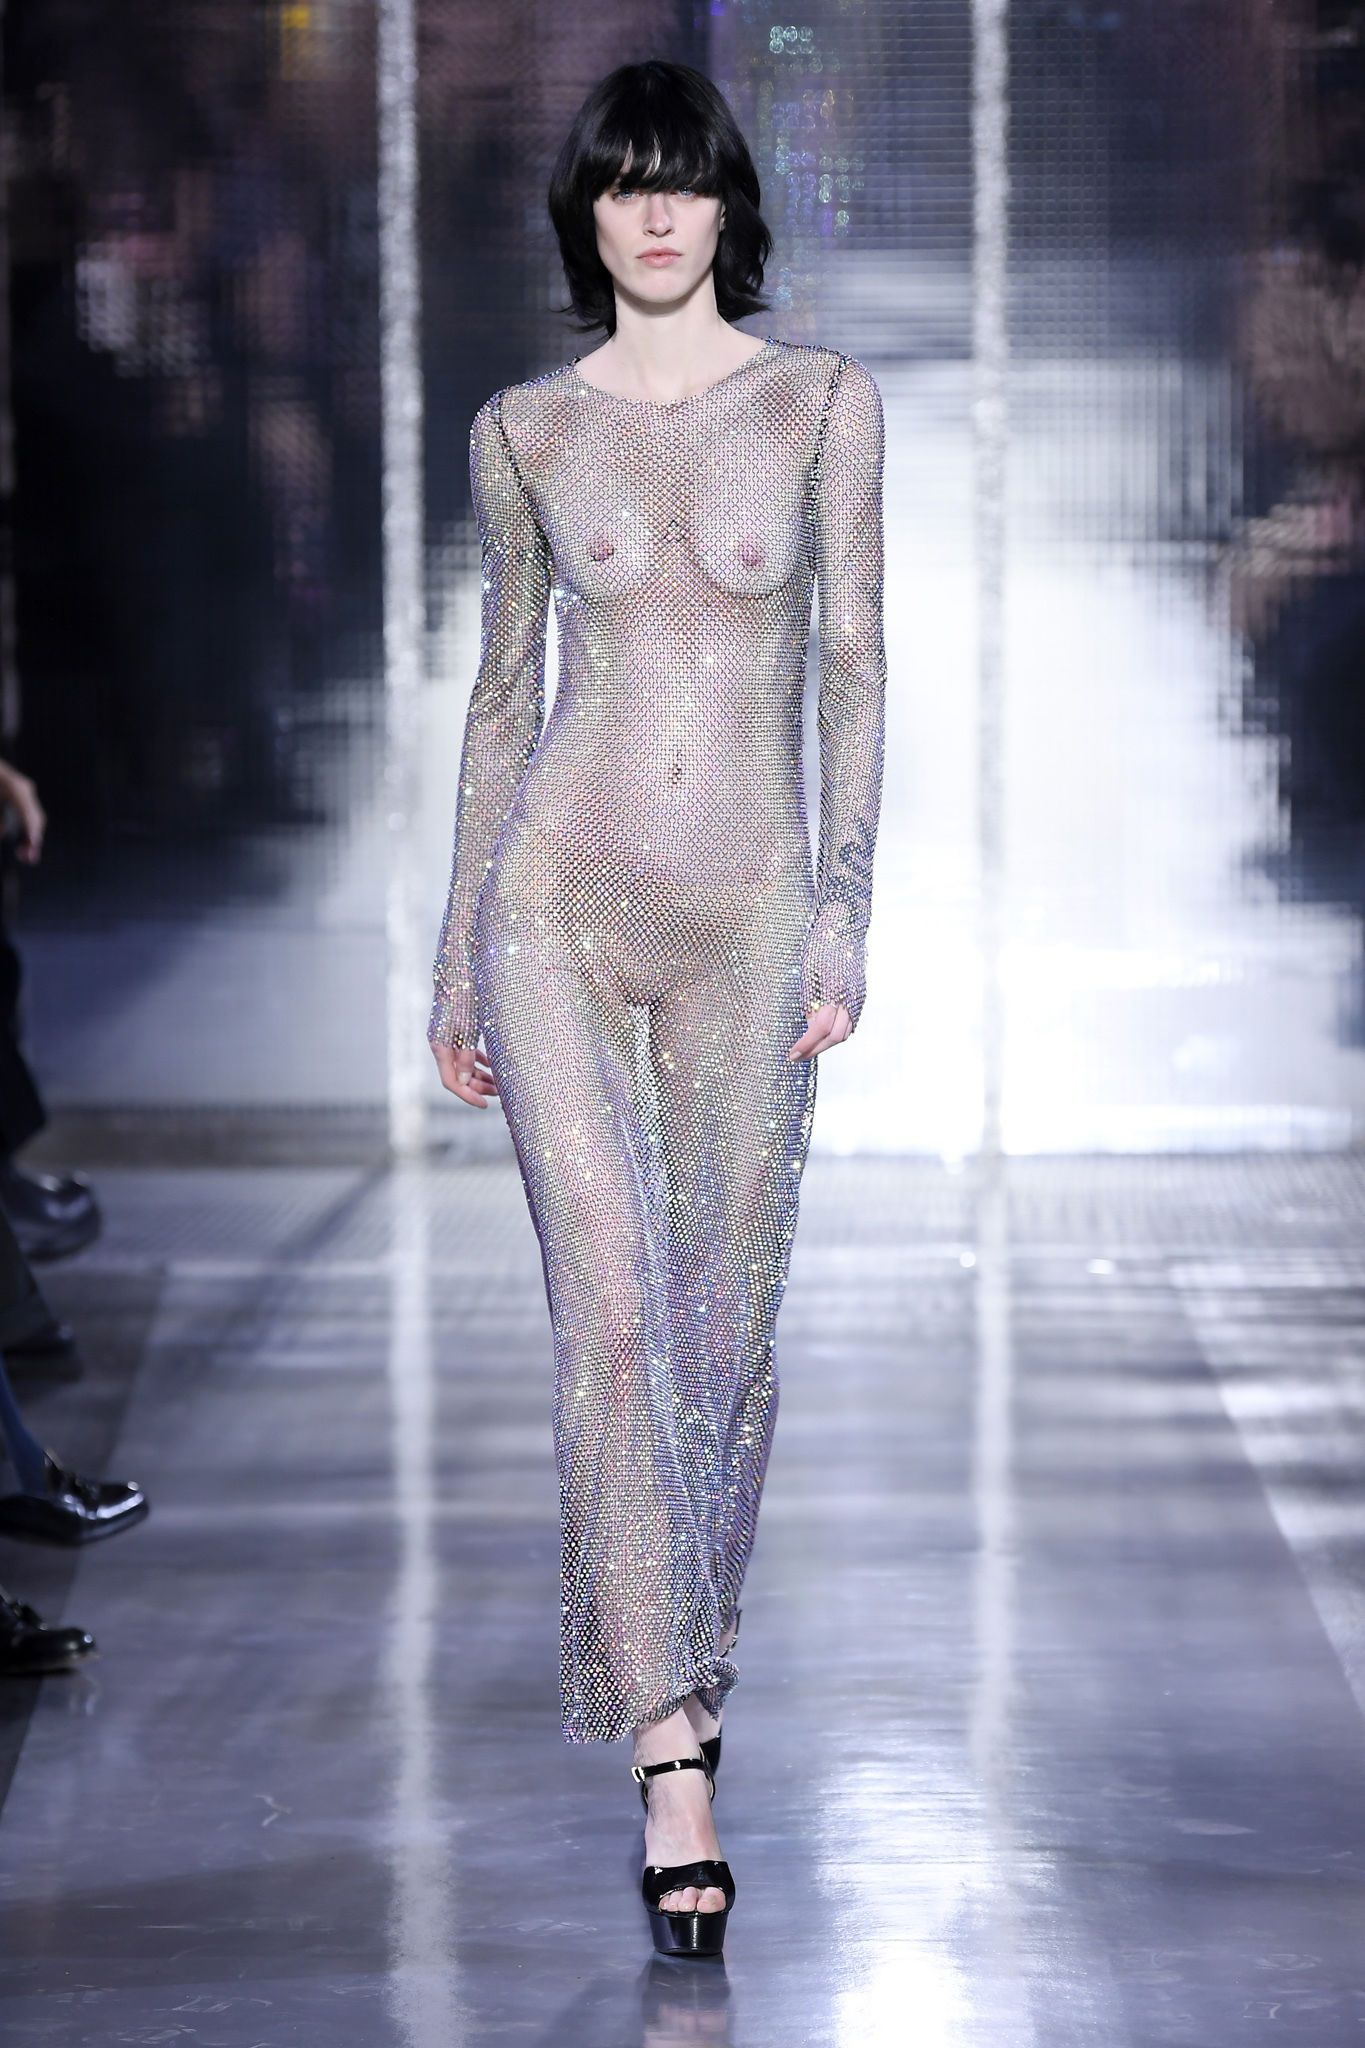 Fashion nude Most Naked